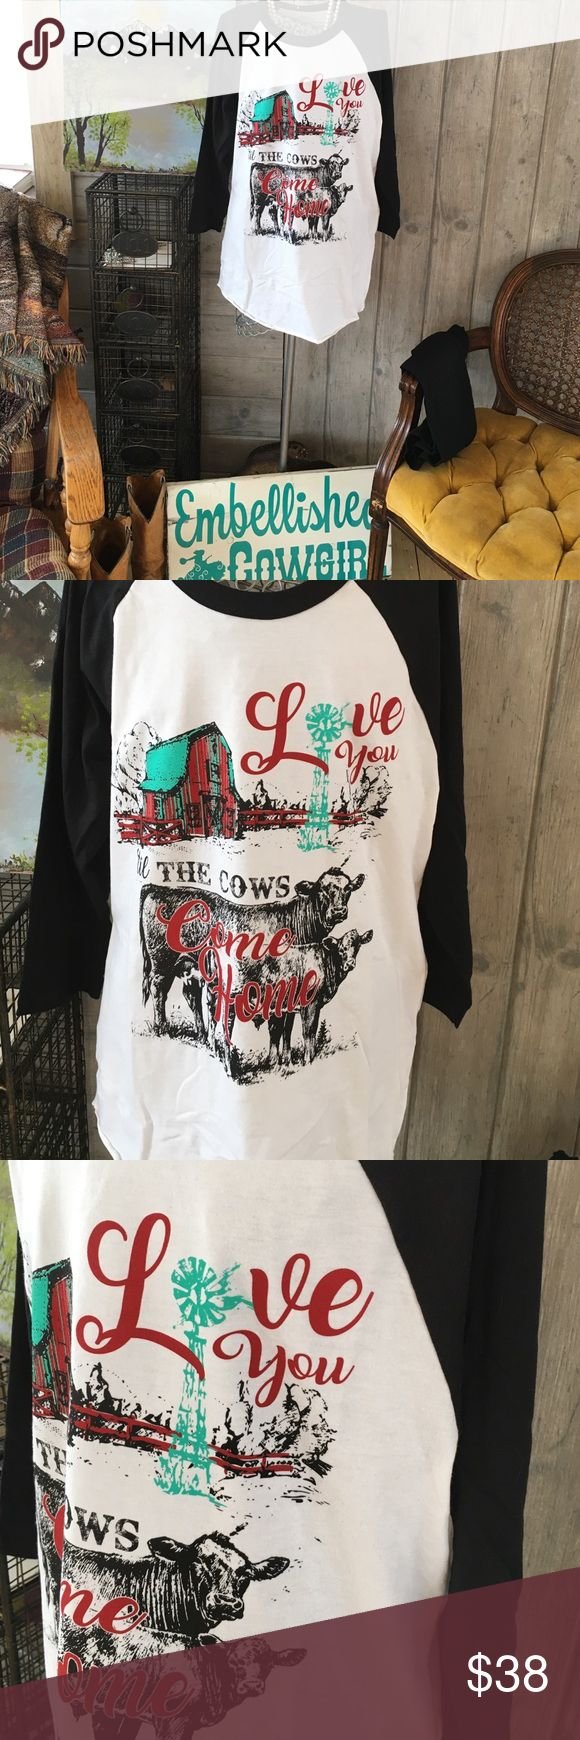 """Country tee top woman and plus sizes So cute and roomy fit tees 3/4 sleeve style. """"Love you till the cows come home"""". Print sayings. Woman and plus sizes available being white main may be a little see through. Roomy fit. So will fit loose and suppose to be like this. Will have our tags attached embellished cowgirl boutique ct Tops Tees - Long Sleeve"""